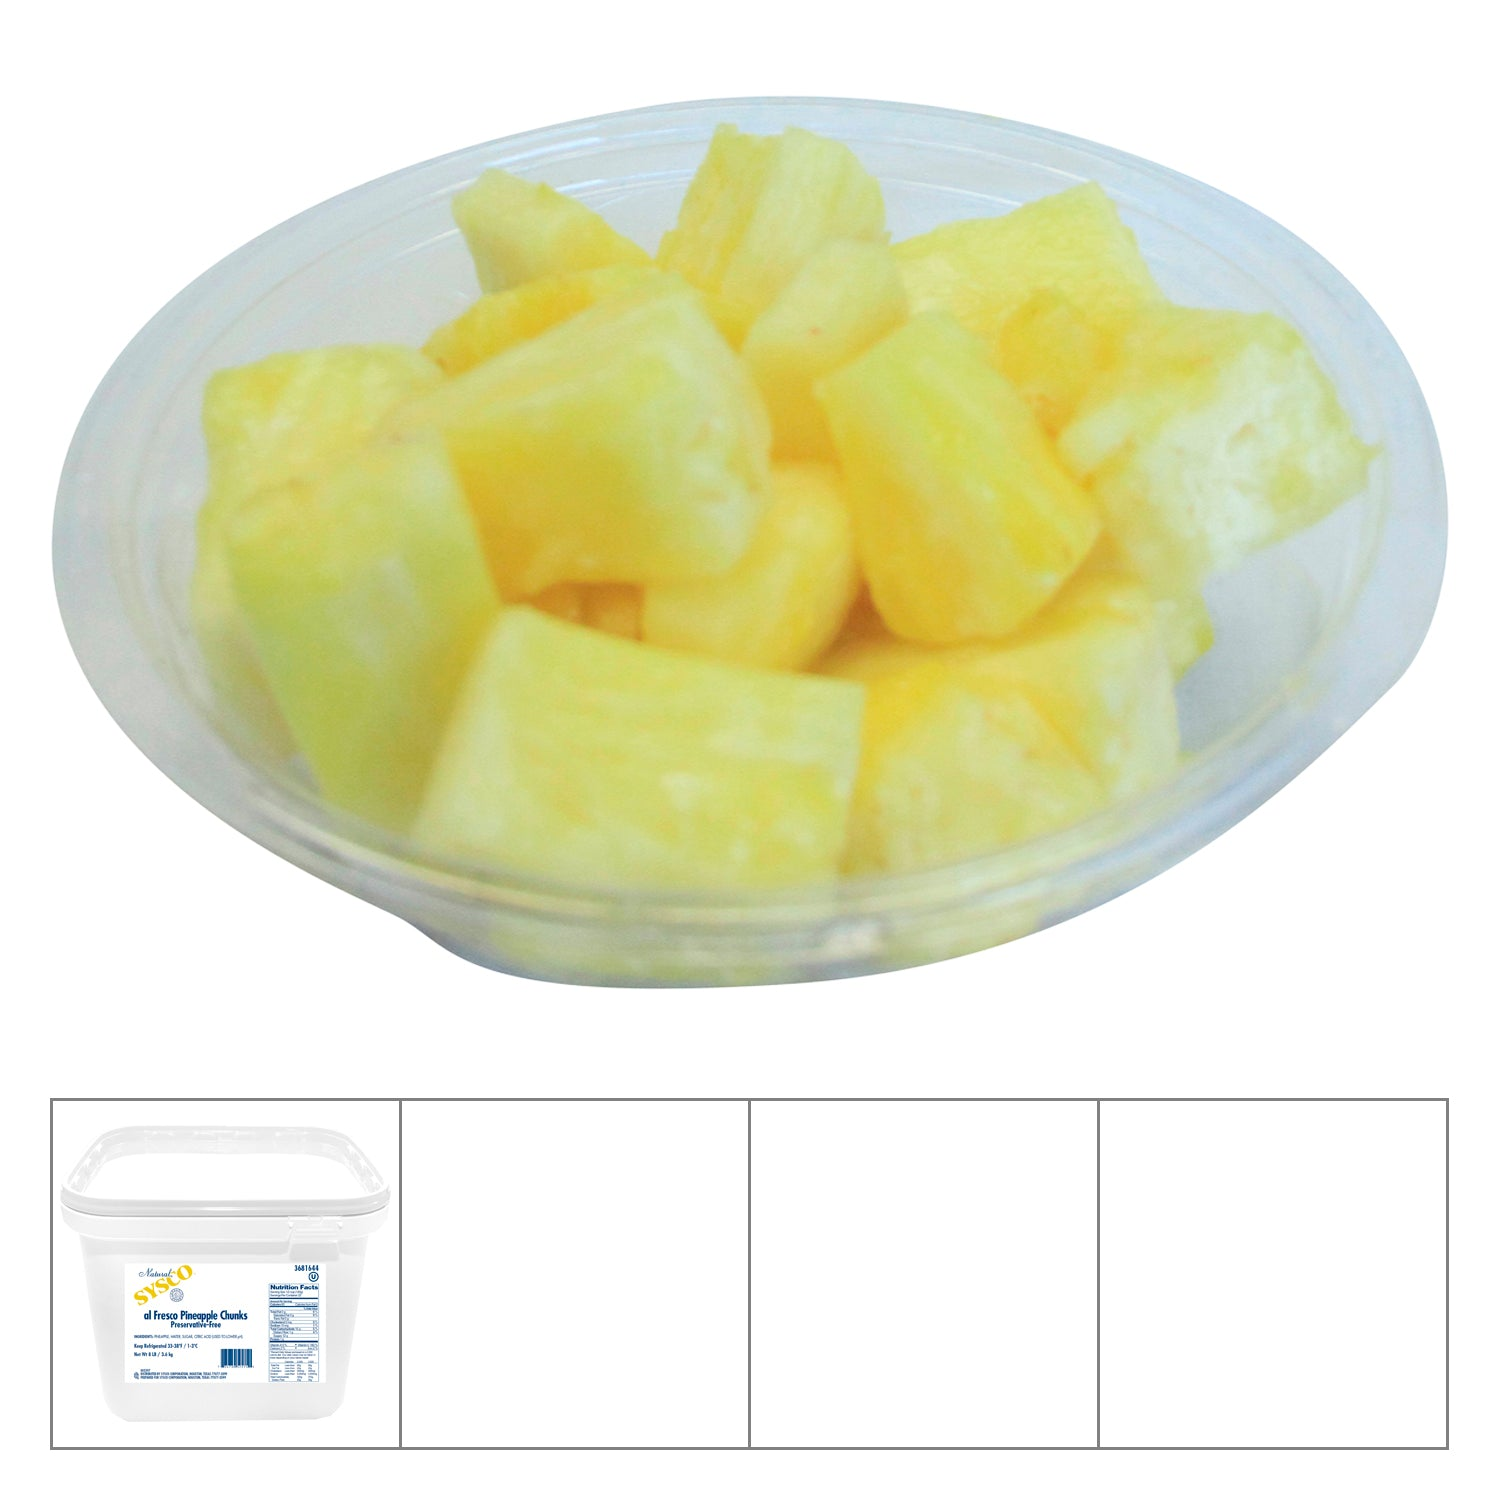 Sysco Imperial Syrup Pineapple Chunk 8 lb - 1 Pack [$3.62/lb]